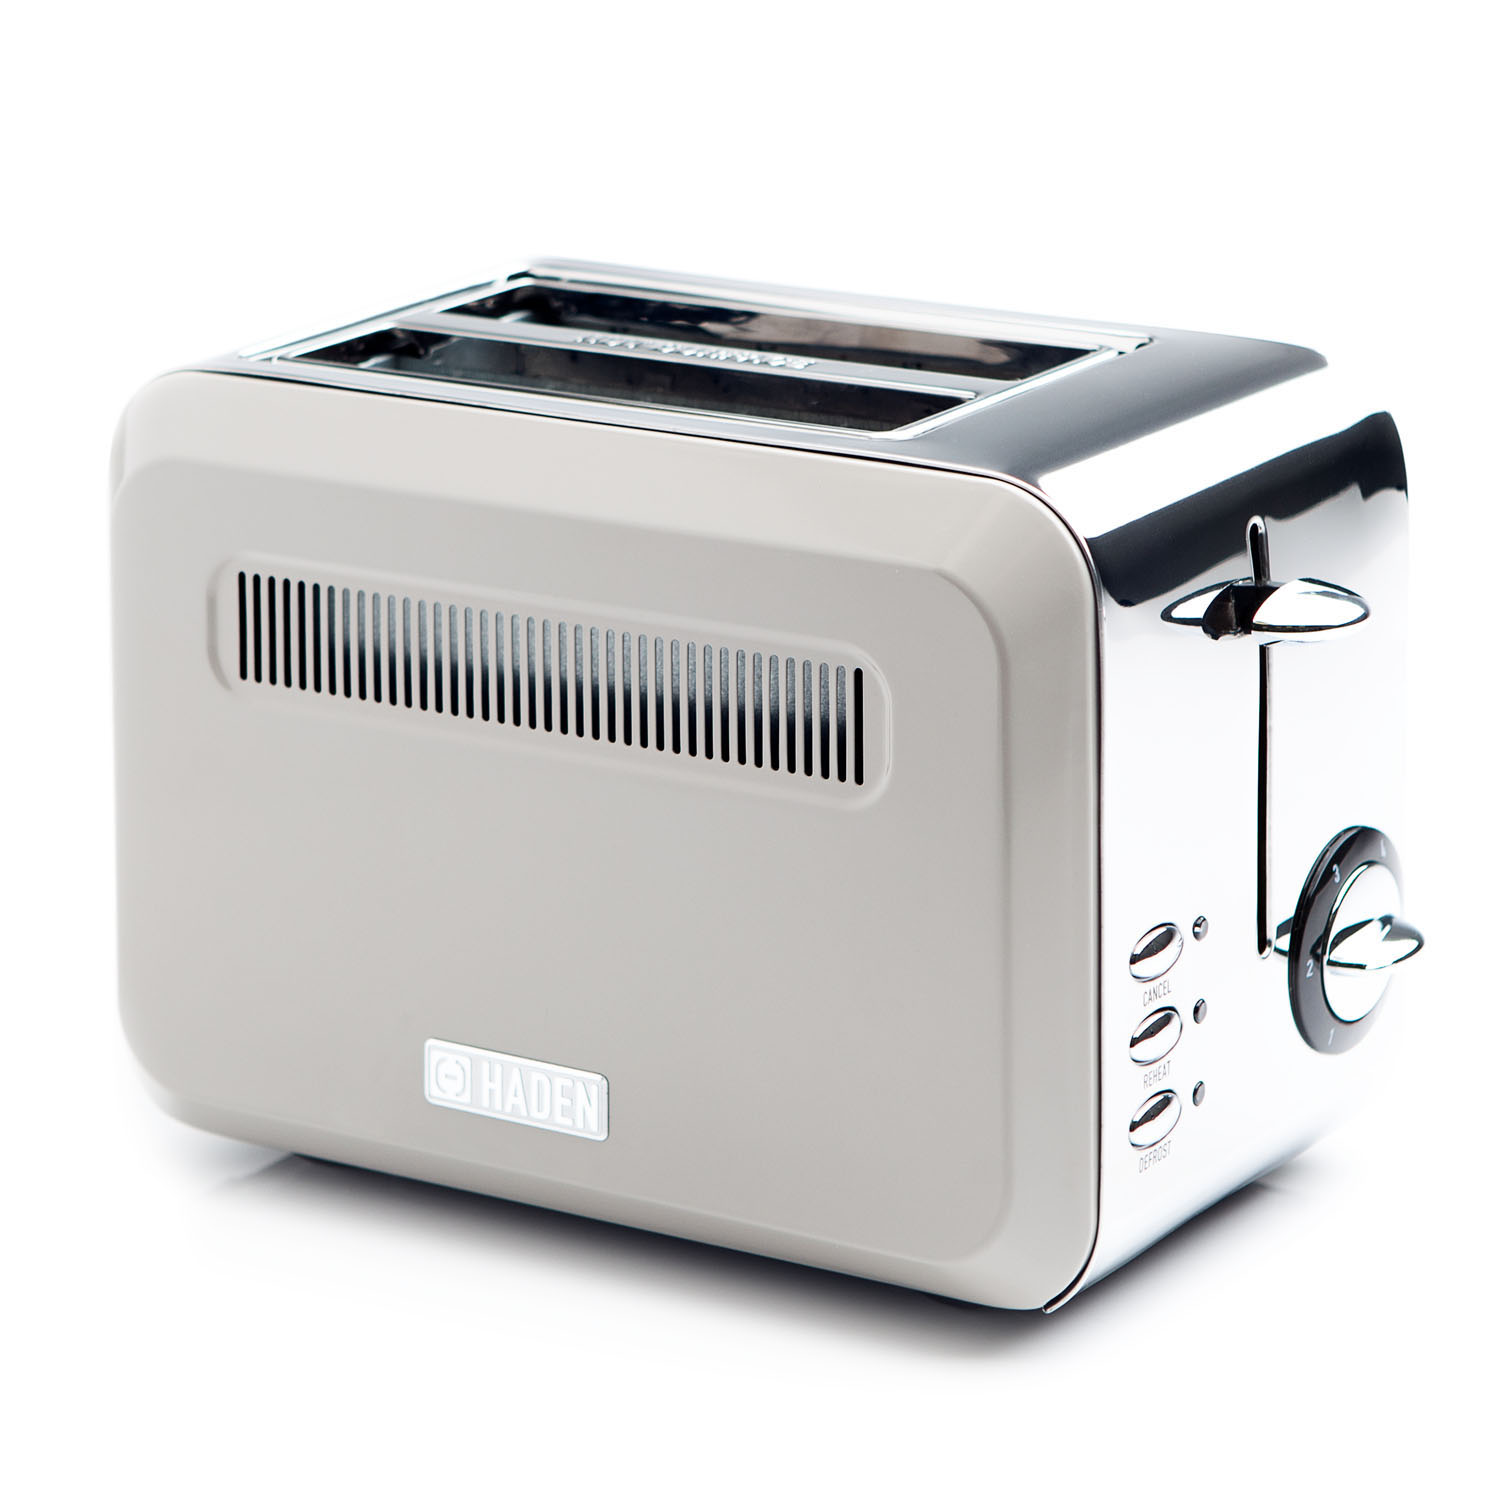 Image of Haden Cotswold 2 Slice Toaster, Putty